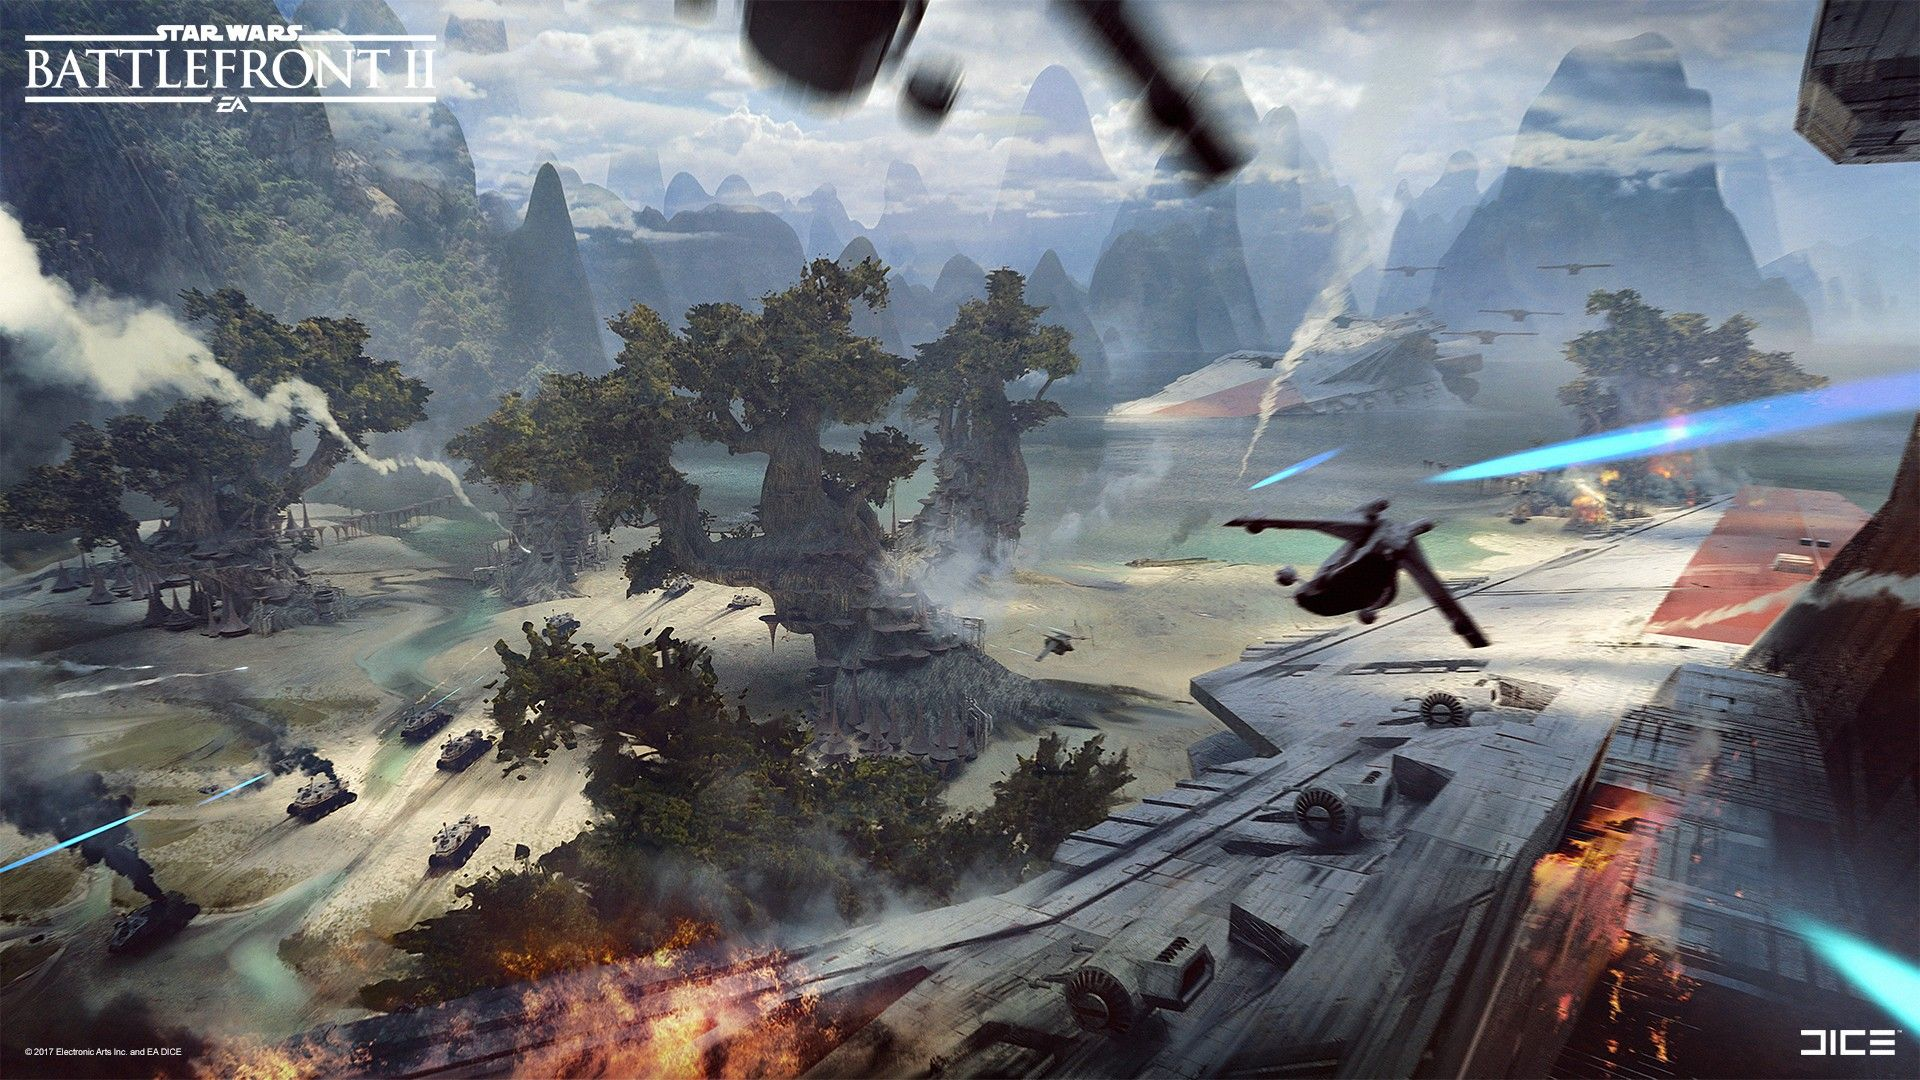 Pin By Brian Kipp On Star Wars Star Wars Pictures Star Wars Star Wars Images